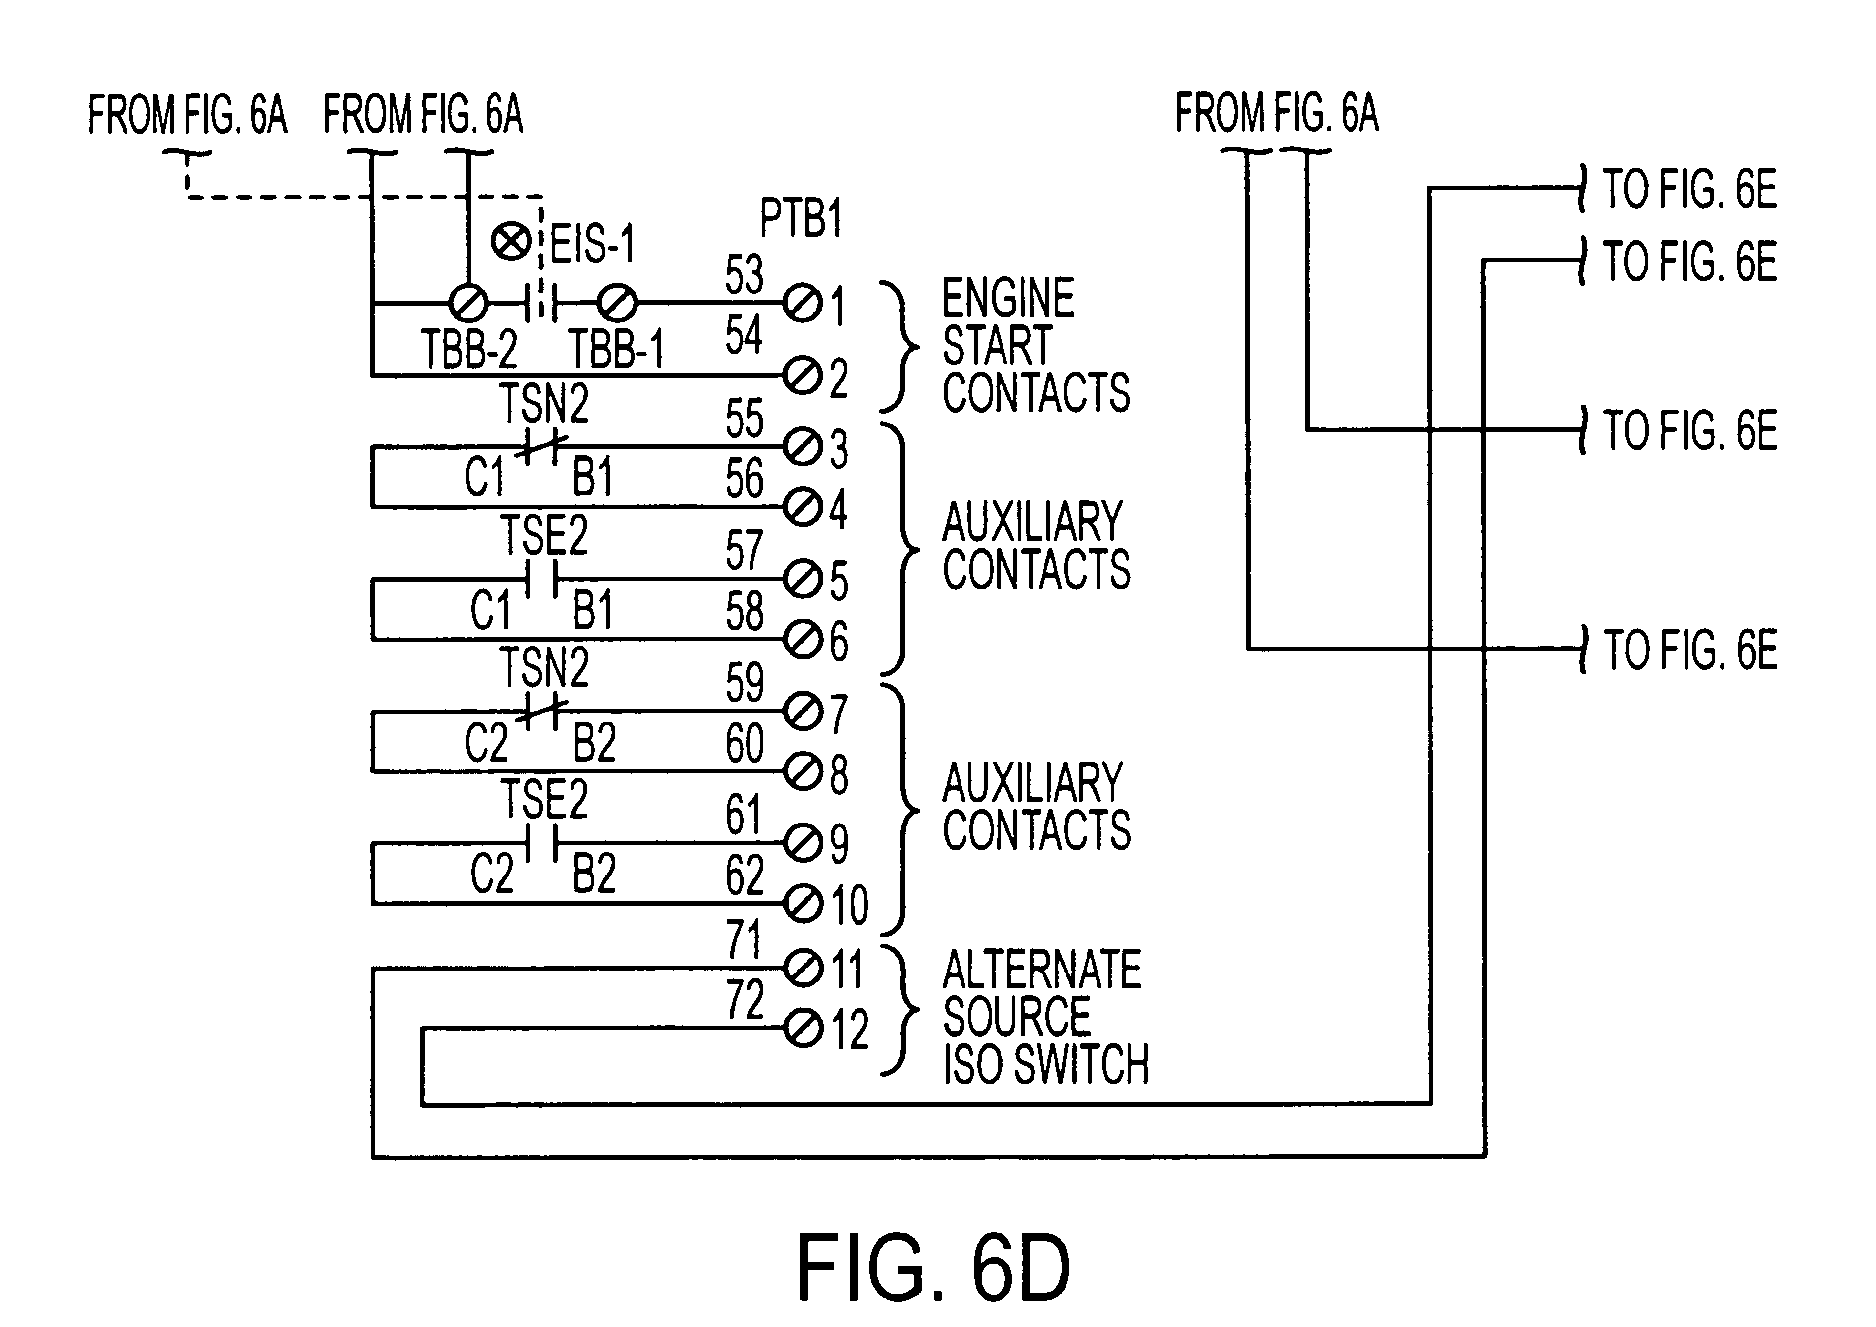 Firetrol Fire Pump Controller Wiring Diagram Expert Category Patent Us20050183868 Integrated And Automatic Rh Google Com Na